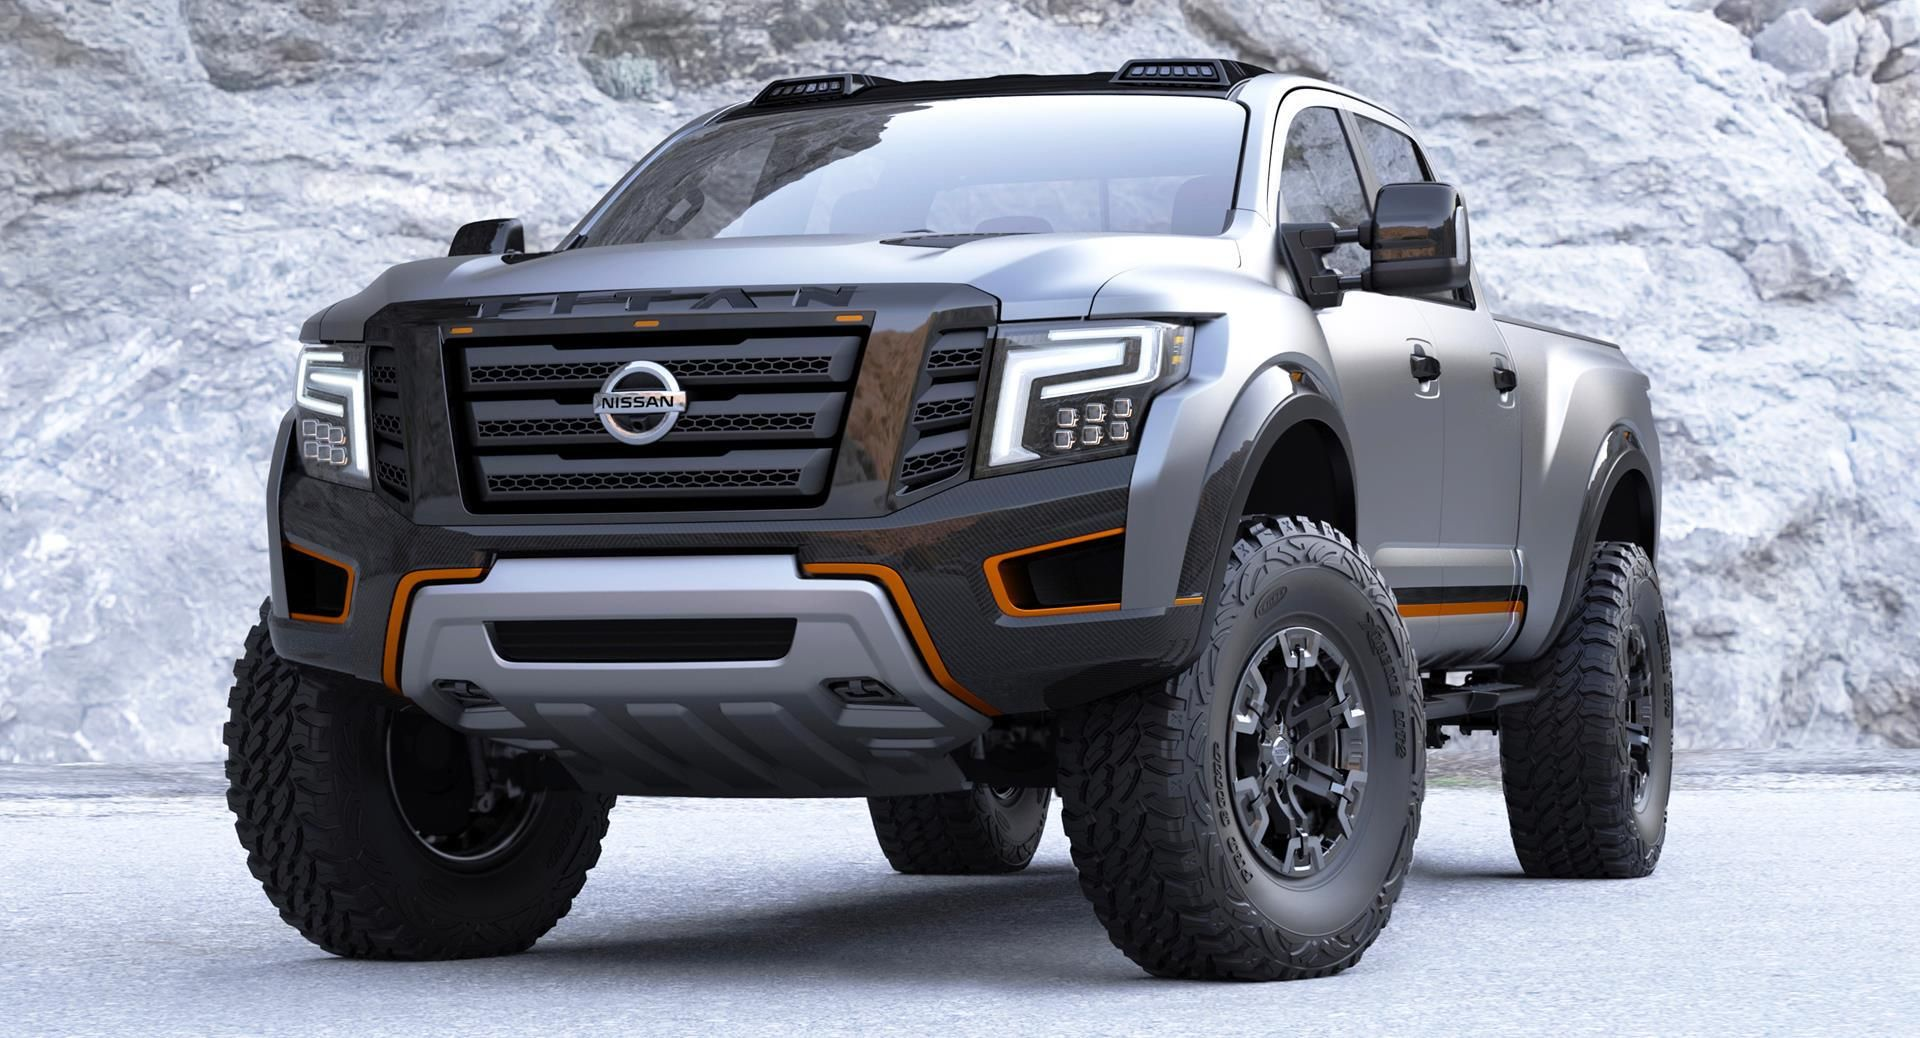 2020 nissan titan diesel review  price and specification rumor